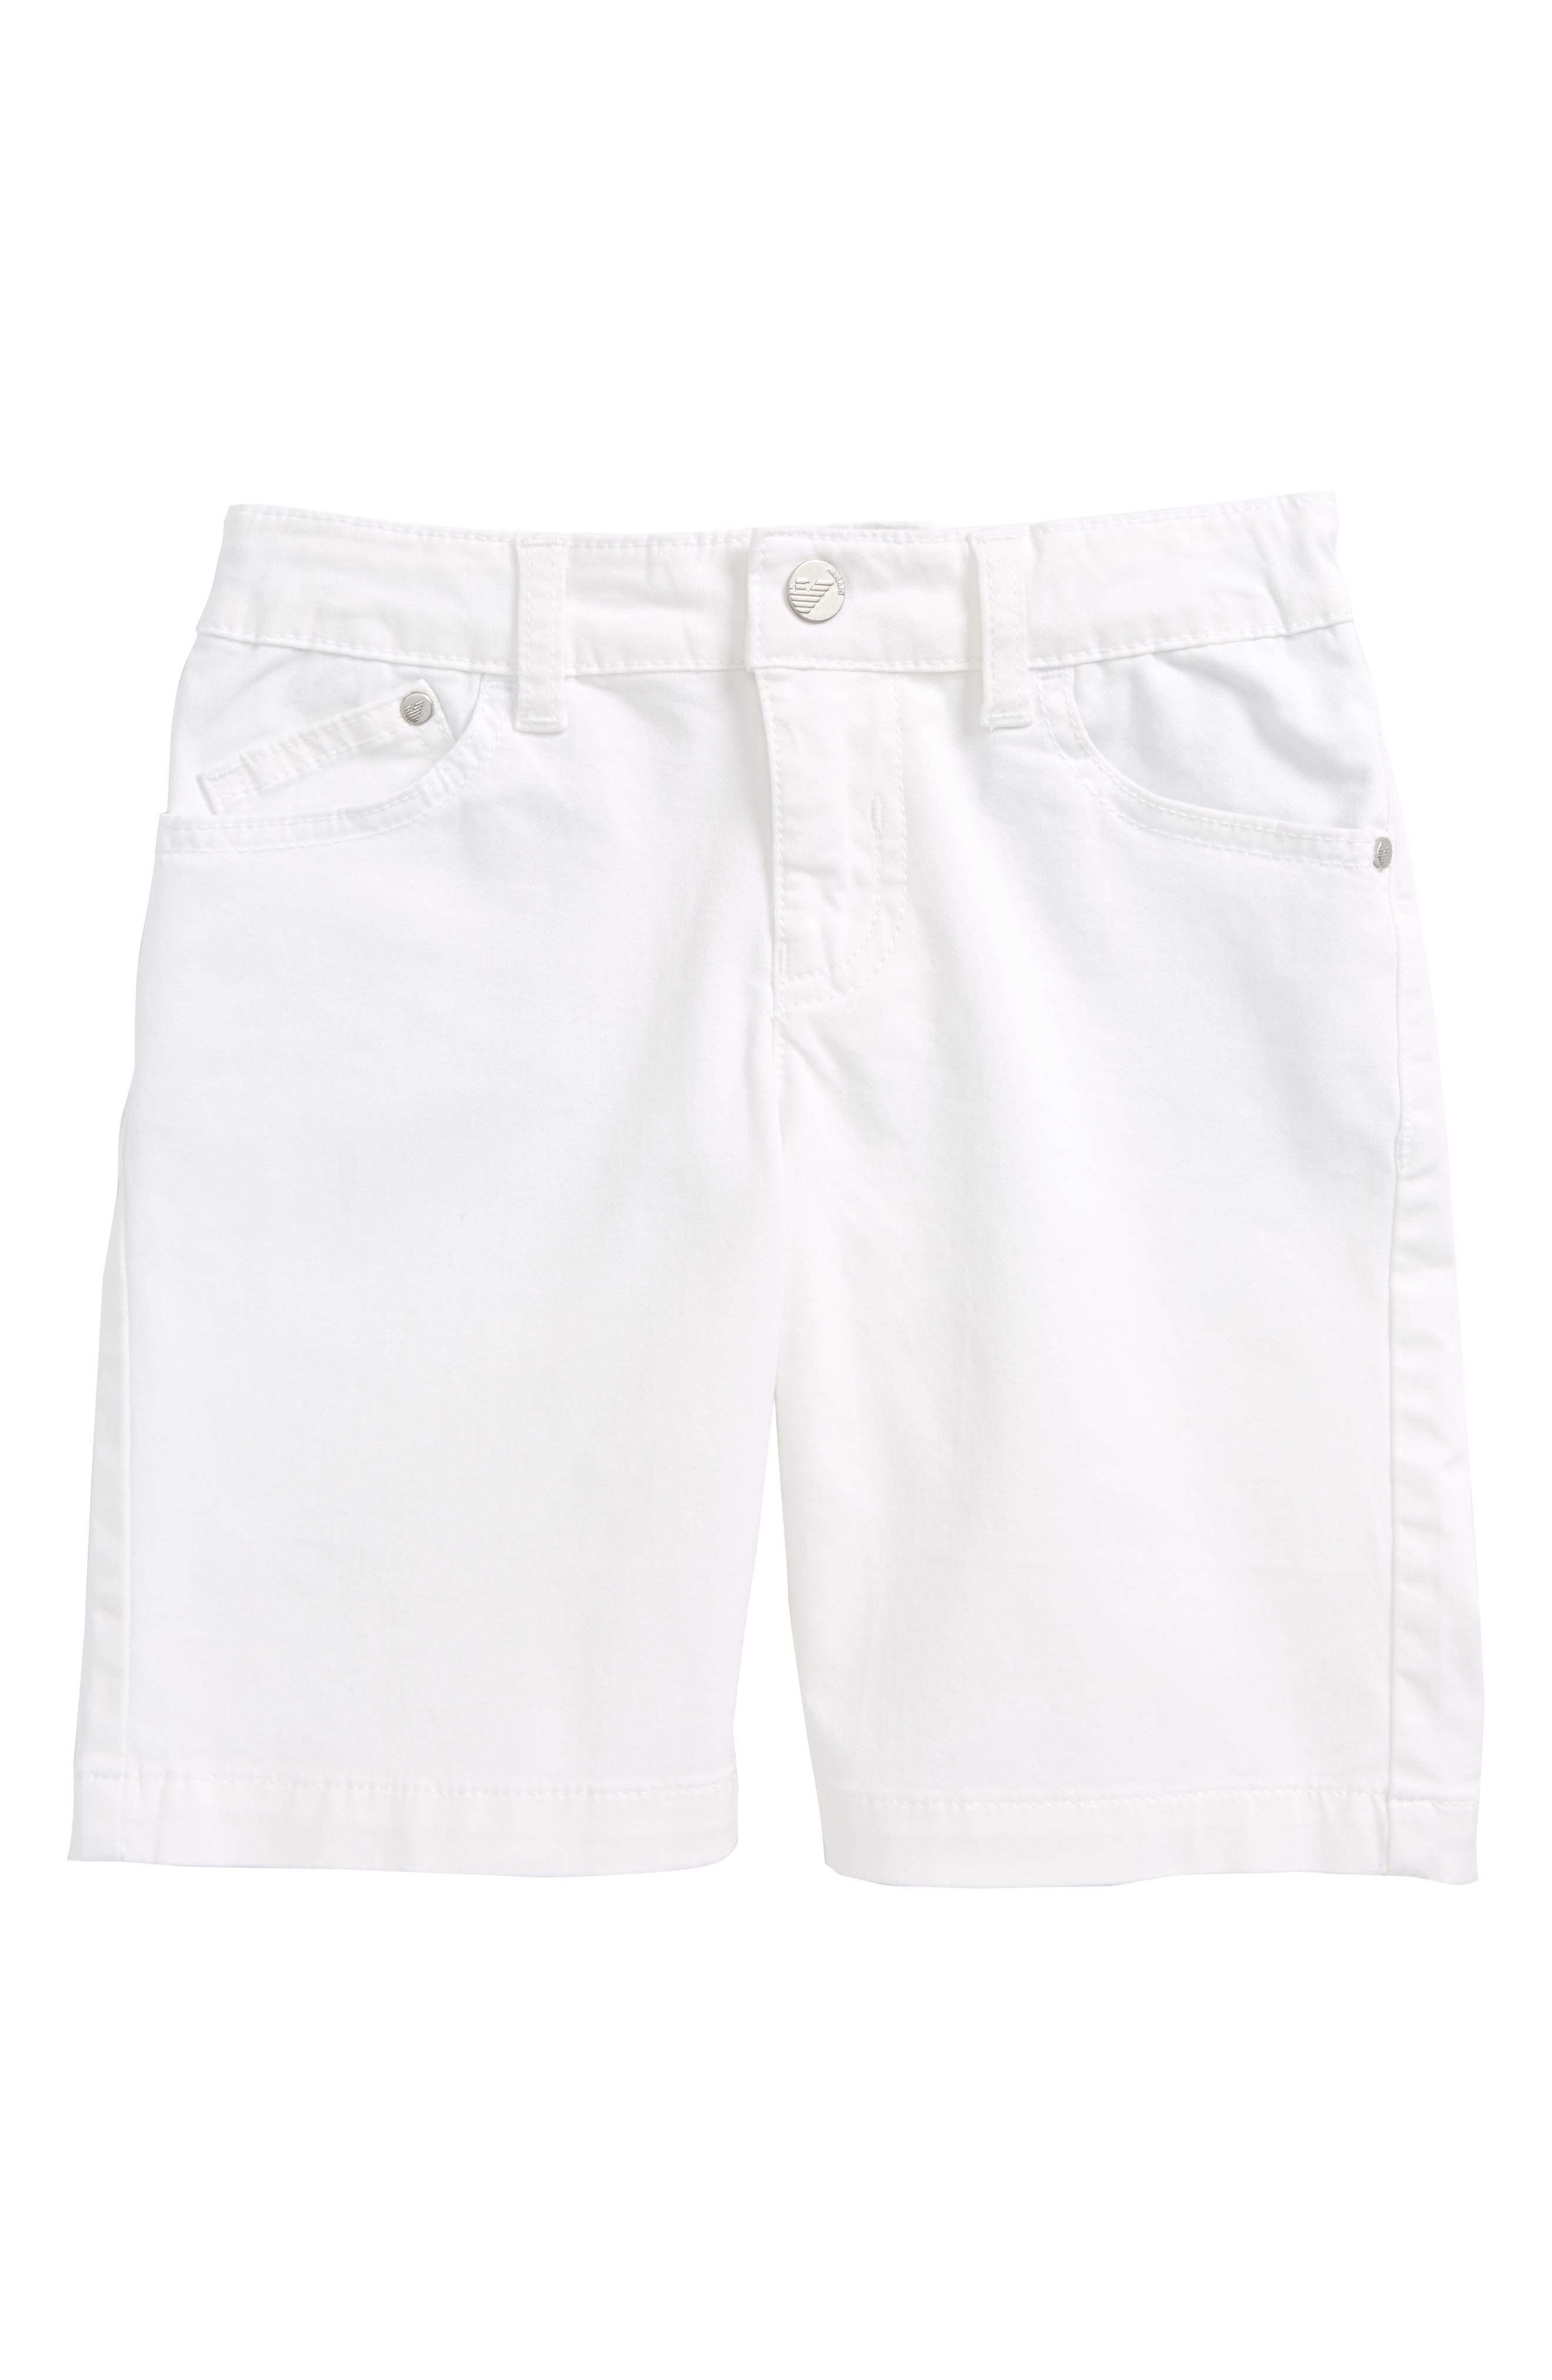 Stretch Cotton Shorts,                         Main,                         color, White